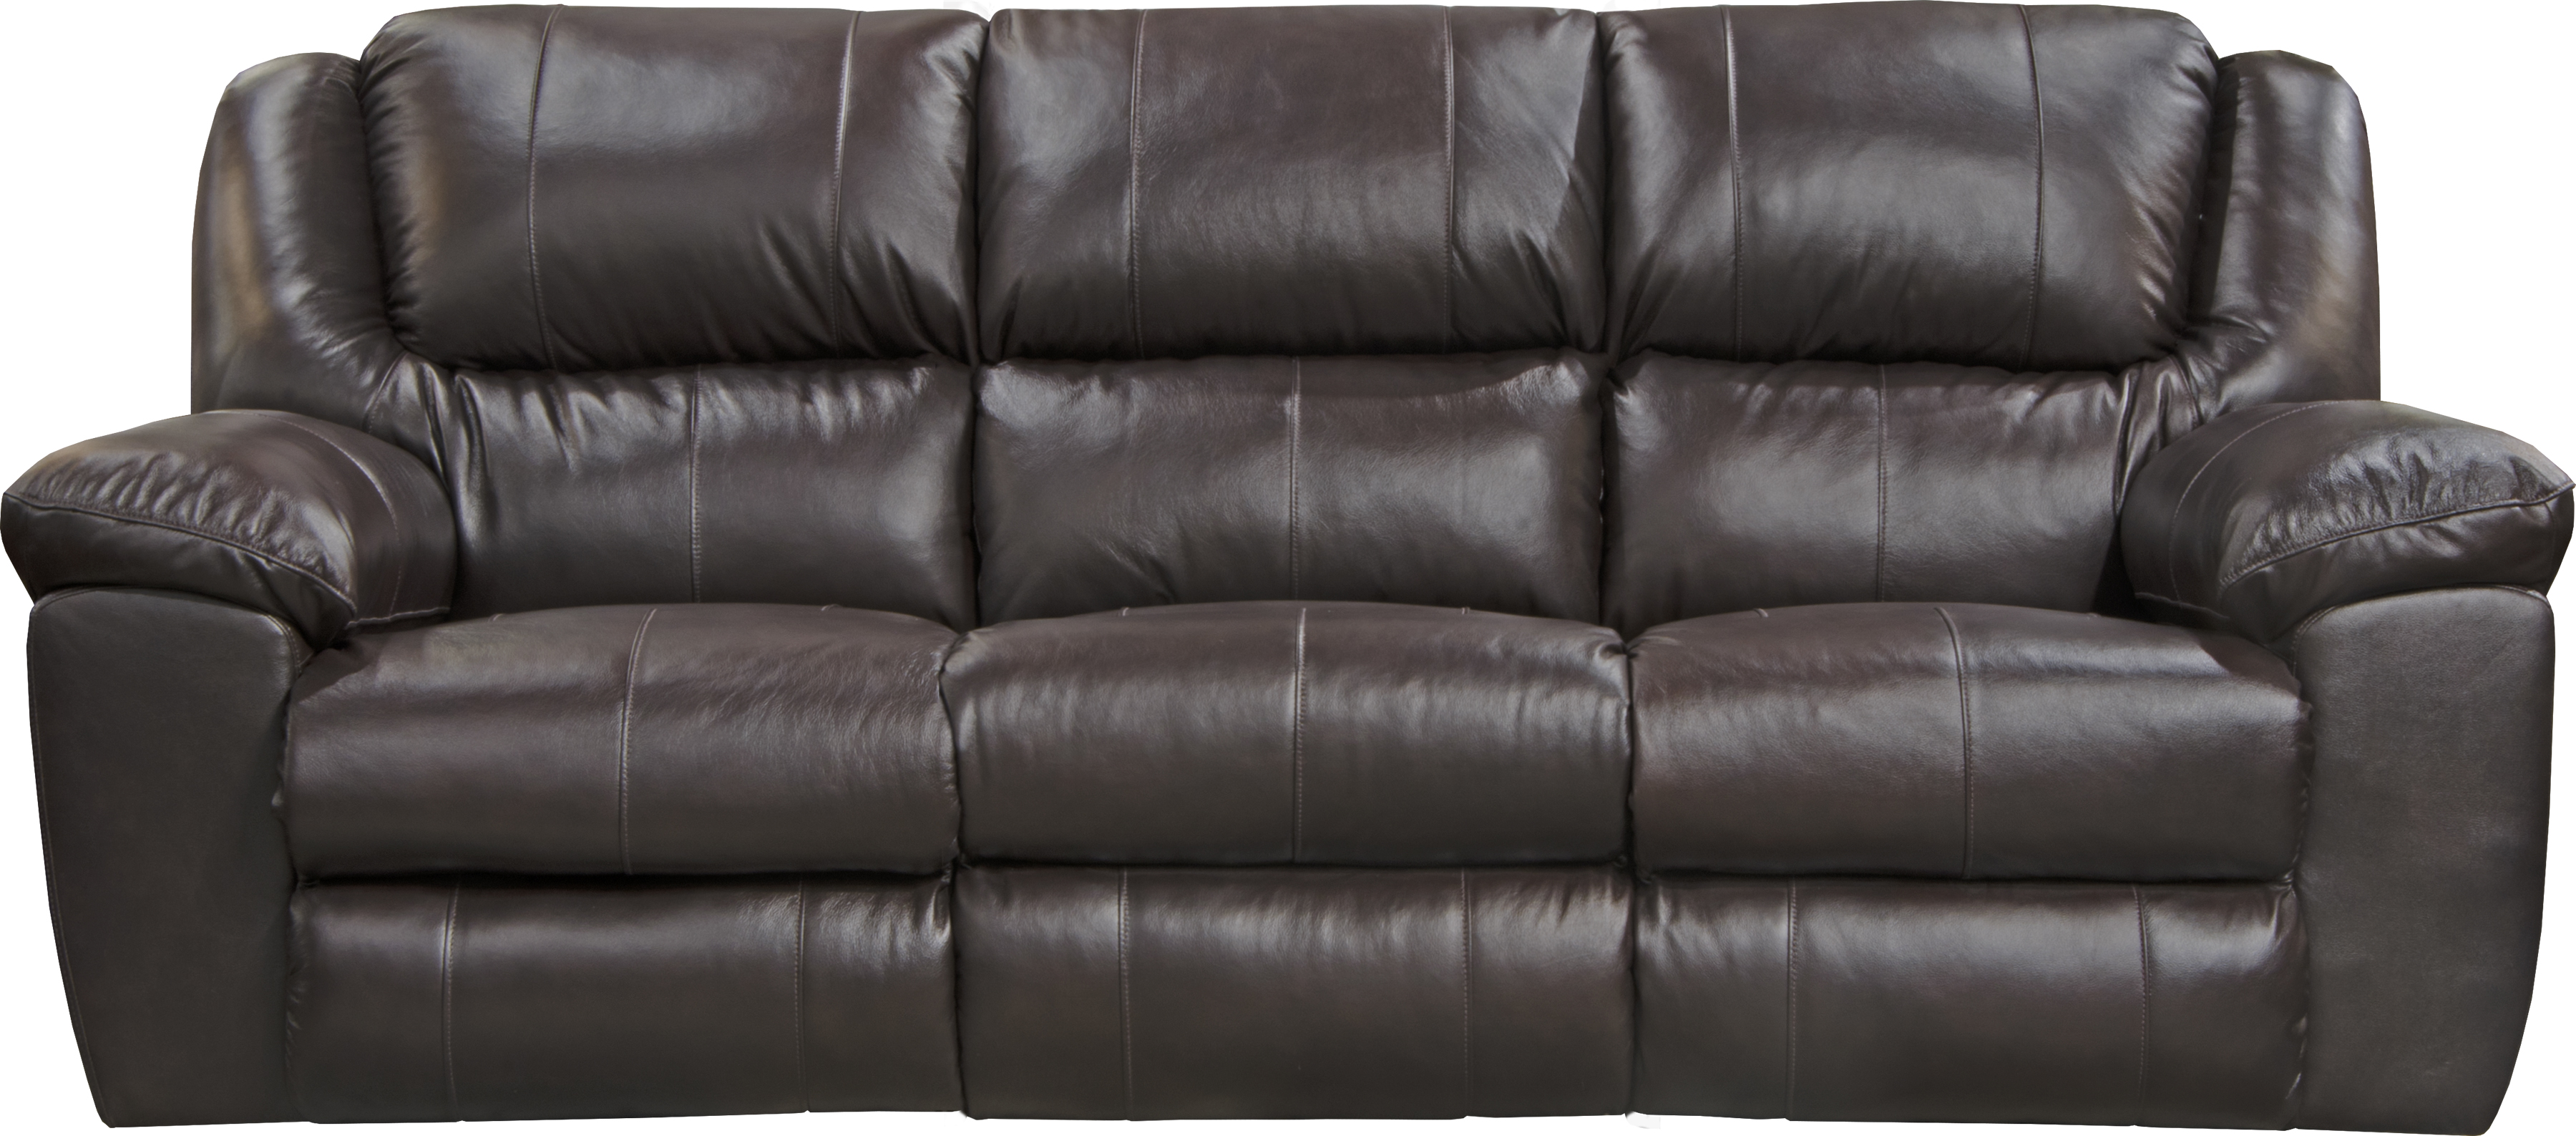 Transformer Ii Italian Leather Reclining Sofa